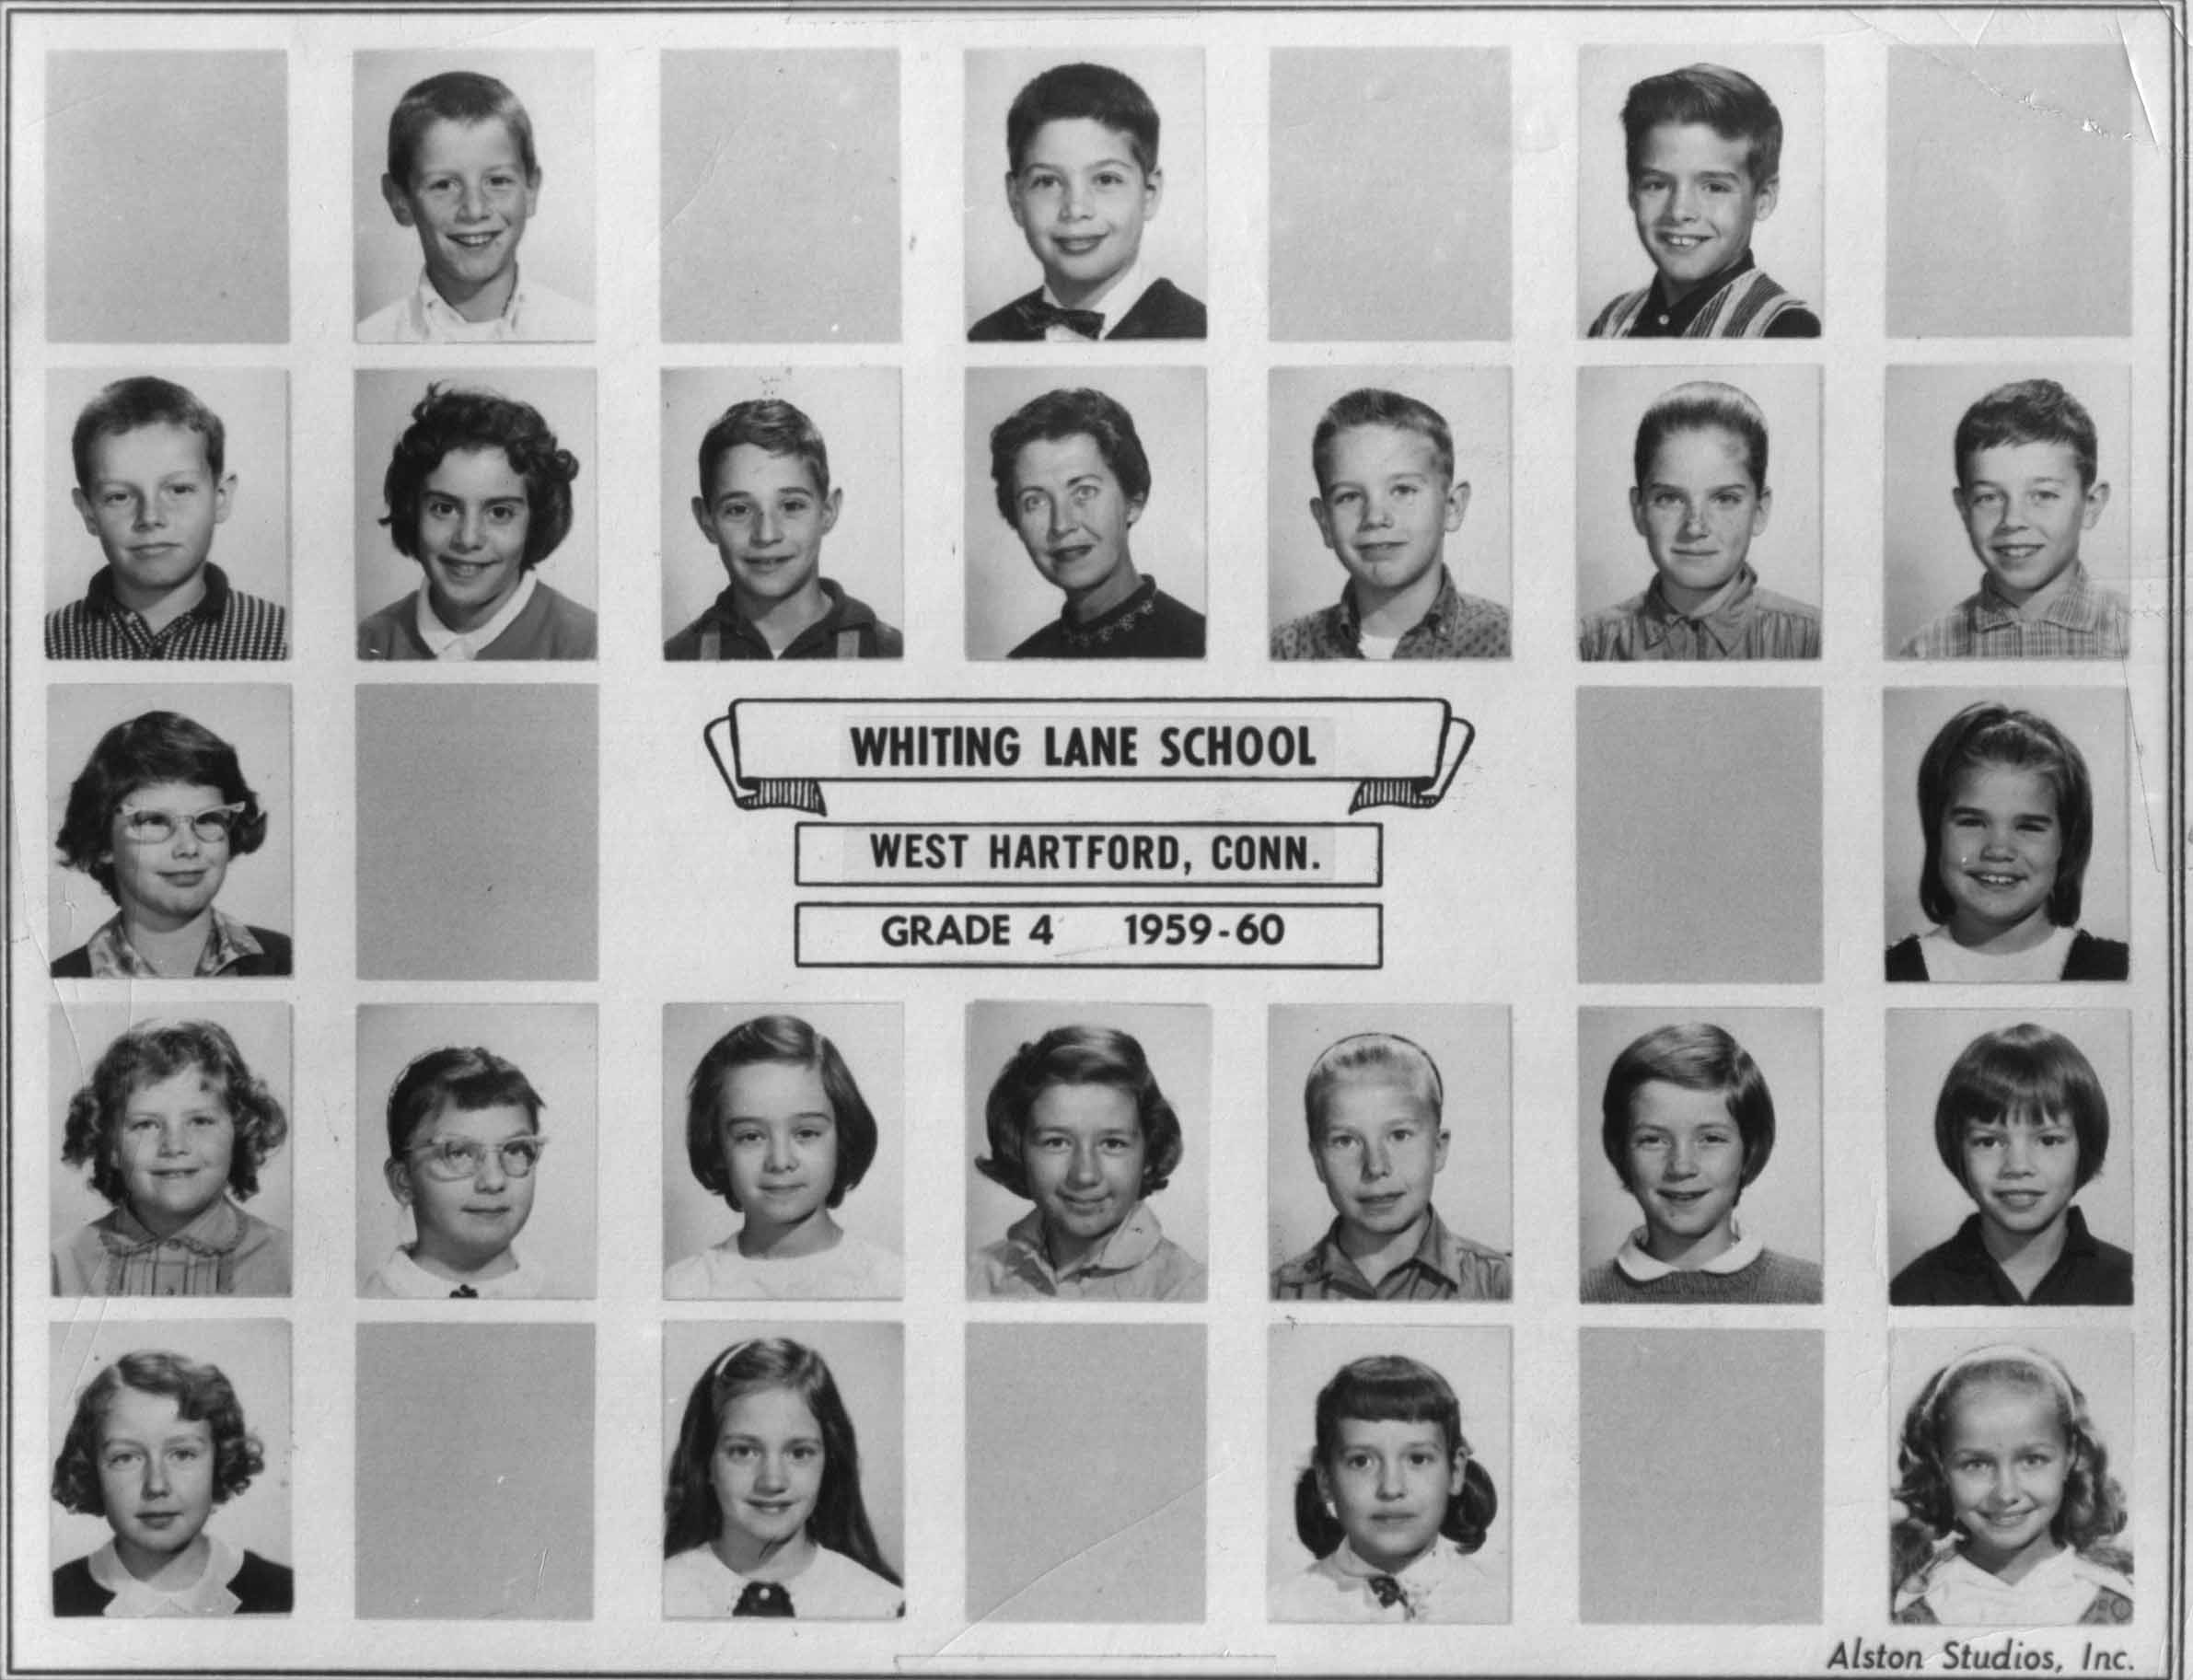 Whiting Lane, West Hartford, CT Grade 4 1959 - 1960